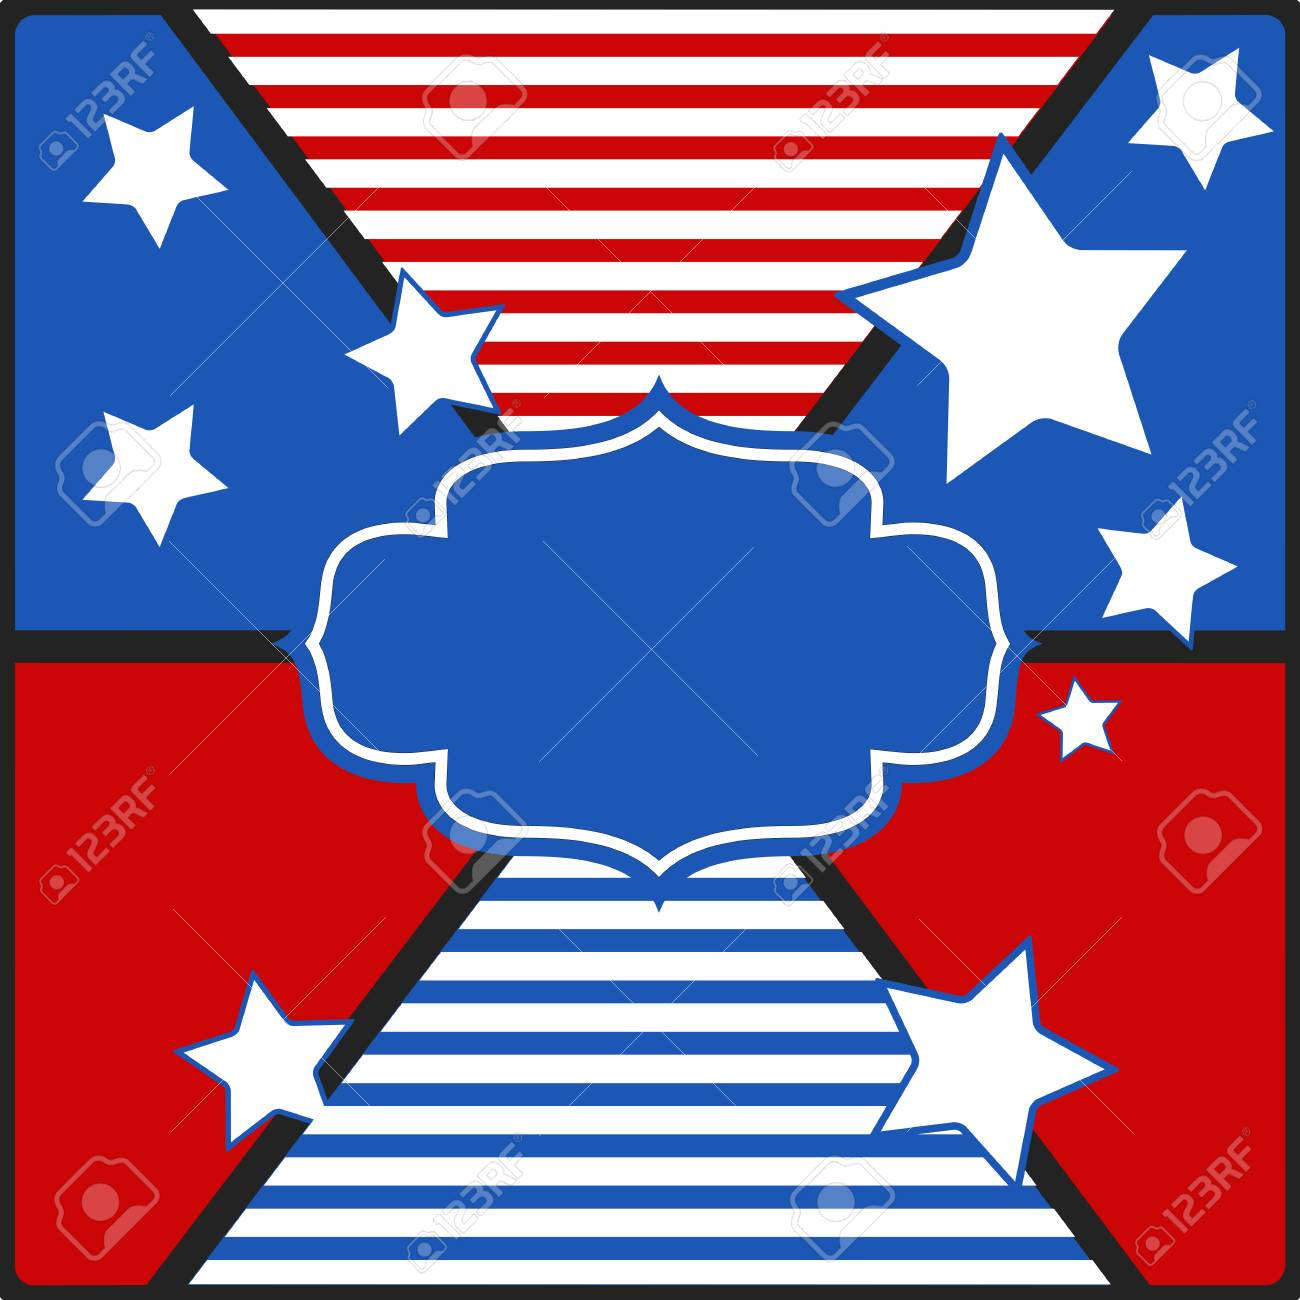 vintage tag background - US 4th of July - Independence Day Vector Design Stock Vector - 22318299